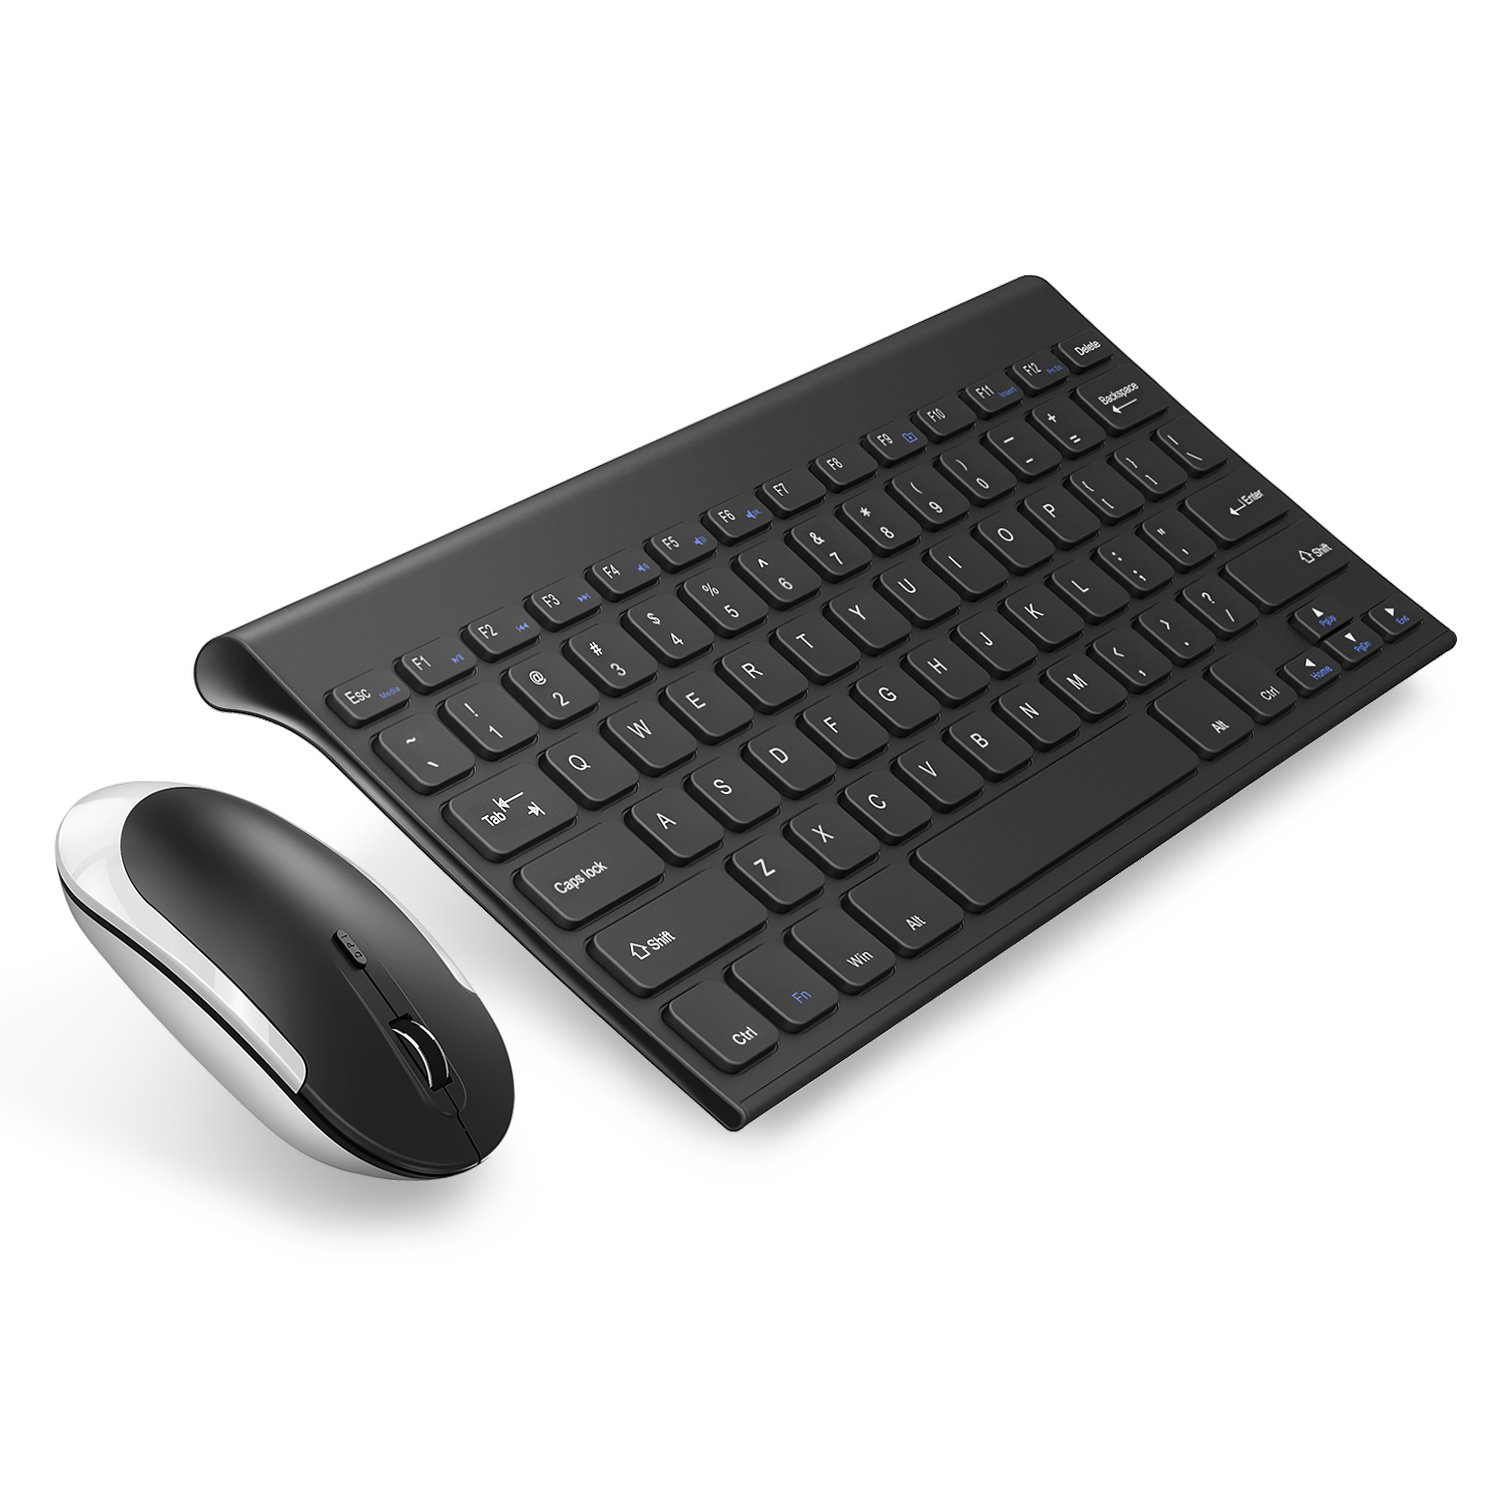 Keyboard Mouse, Jelly Comb 2.4 G Ultra Slim Rechargeable Wireless Keyboard and Mouse Combo for Laptop Desktop PC Computer (Black)